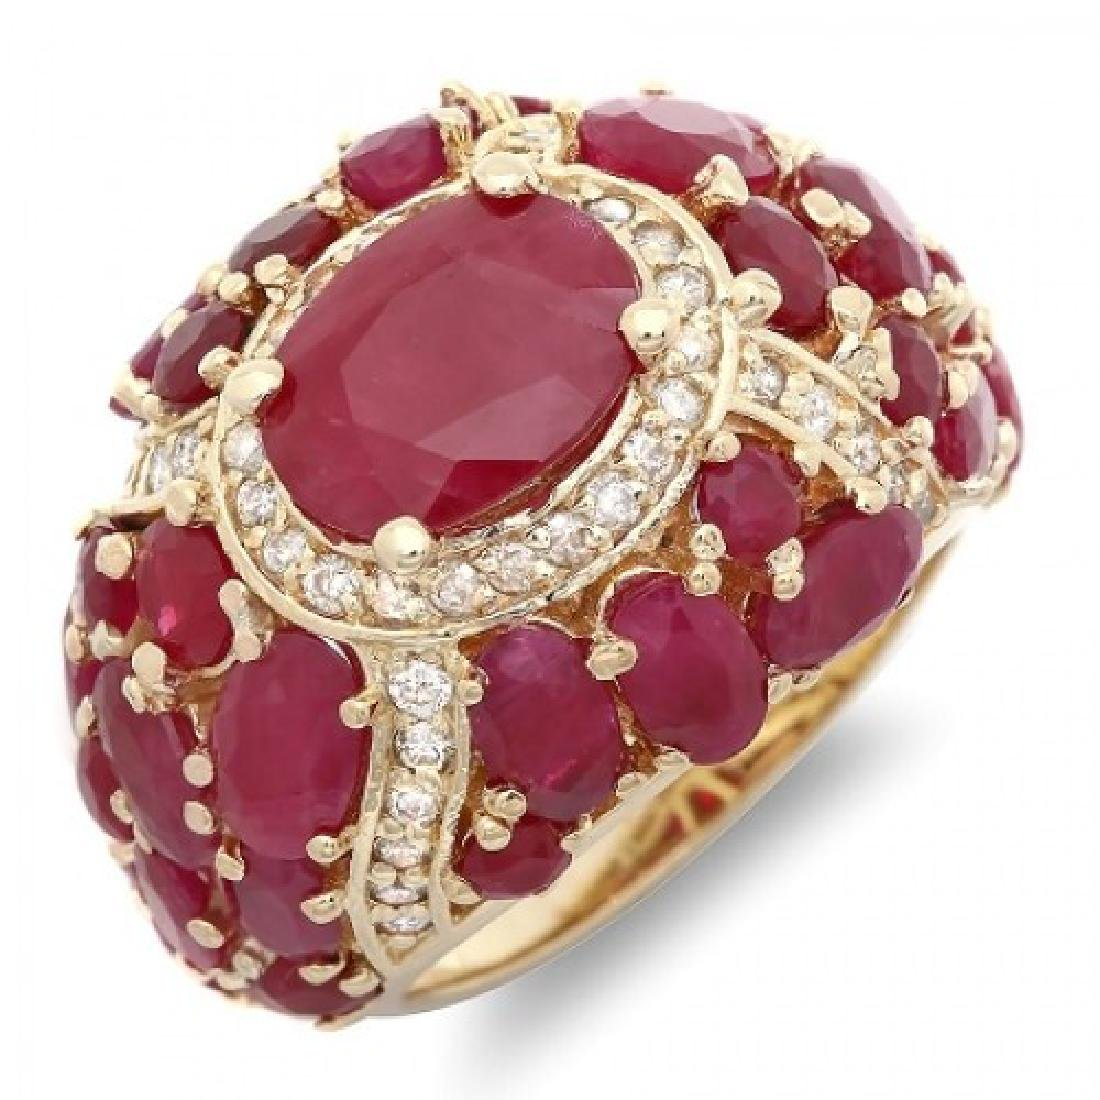 9.89 Carat Natural Ruby 18K Solid Yellow Gold Diamond